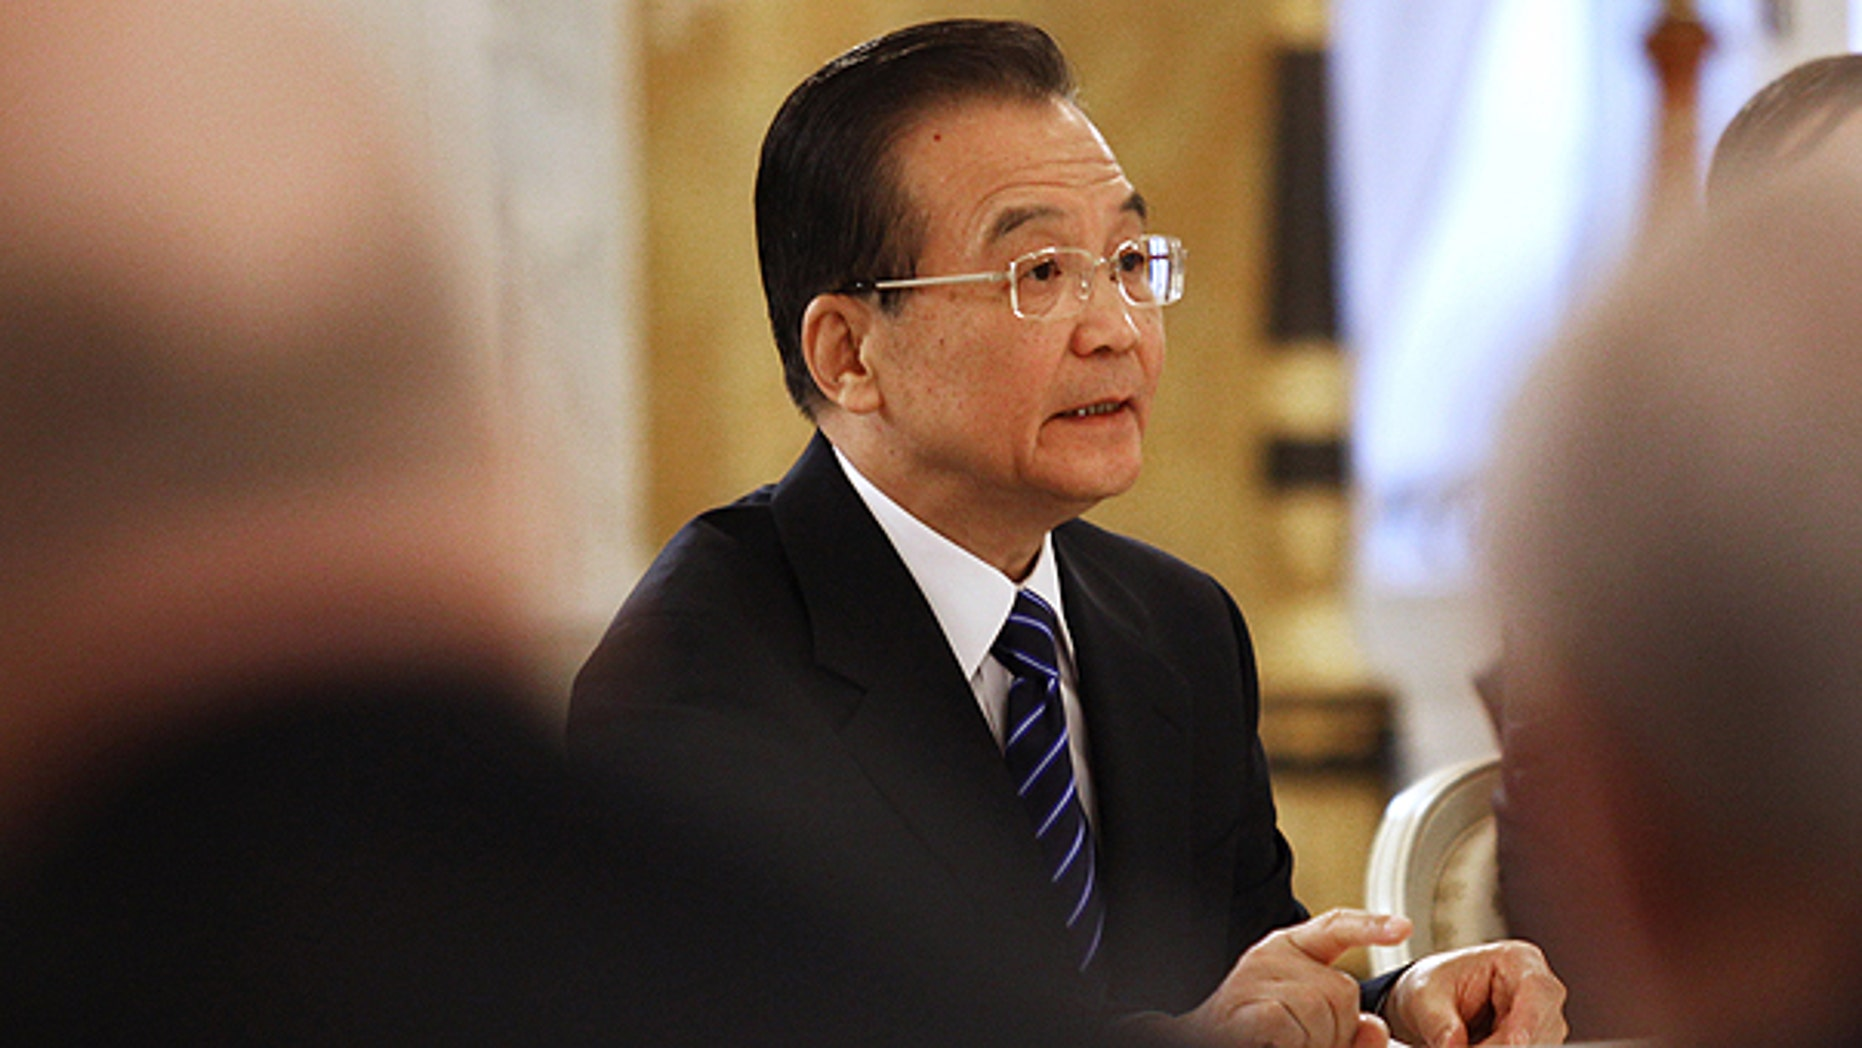 Nov. 23: Chinese Prime Minister Wen Jiabao speaks during his meeting with his Russian counterpart Vladimir Putin, in St.Petersburg, Russia.